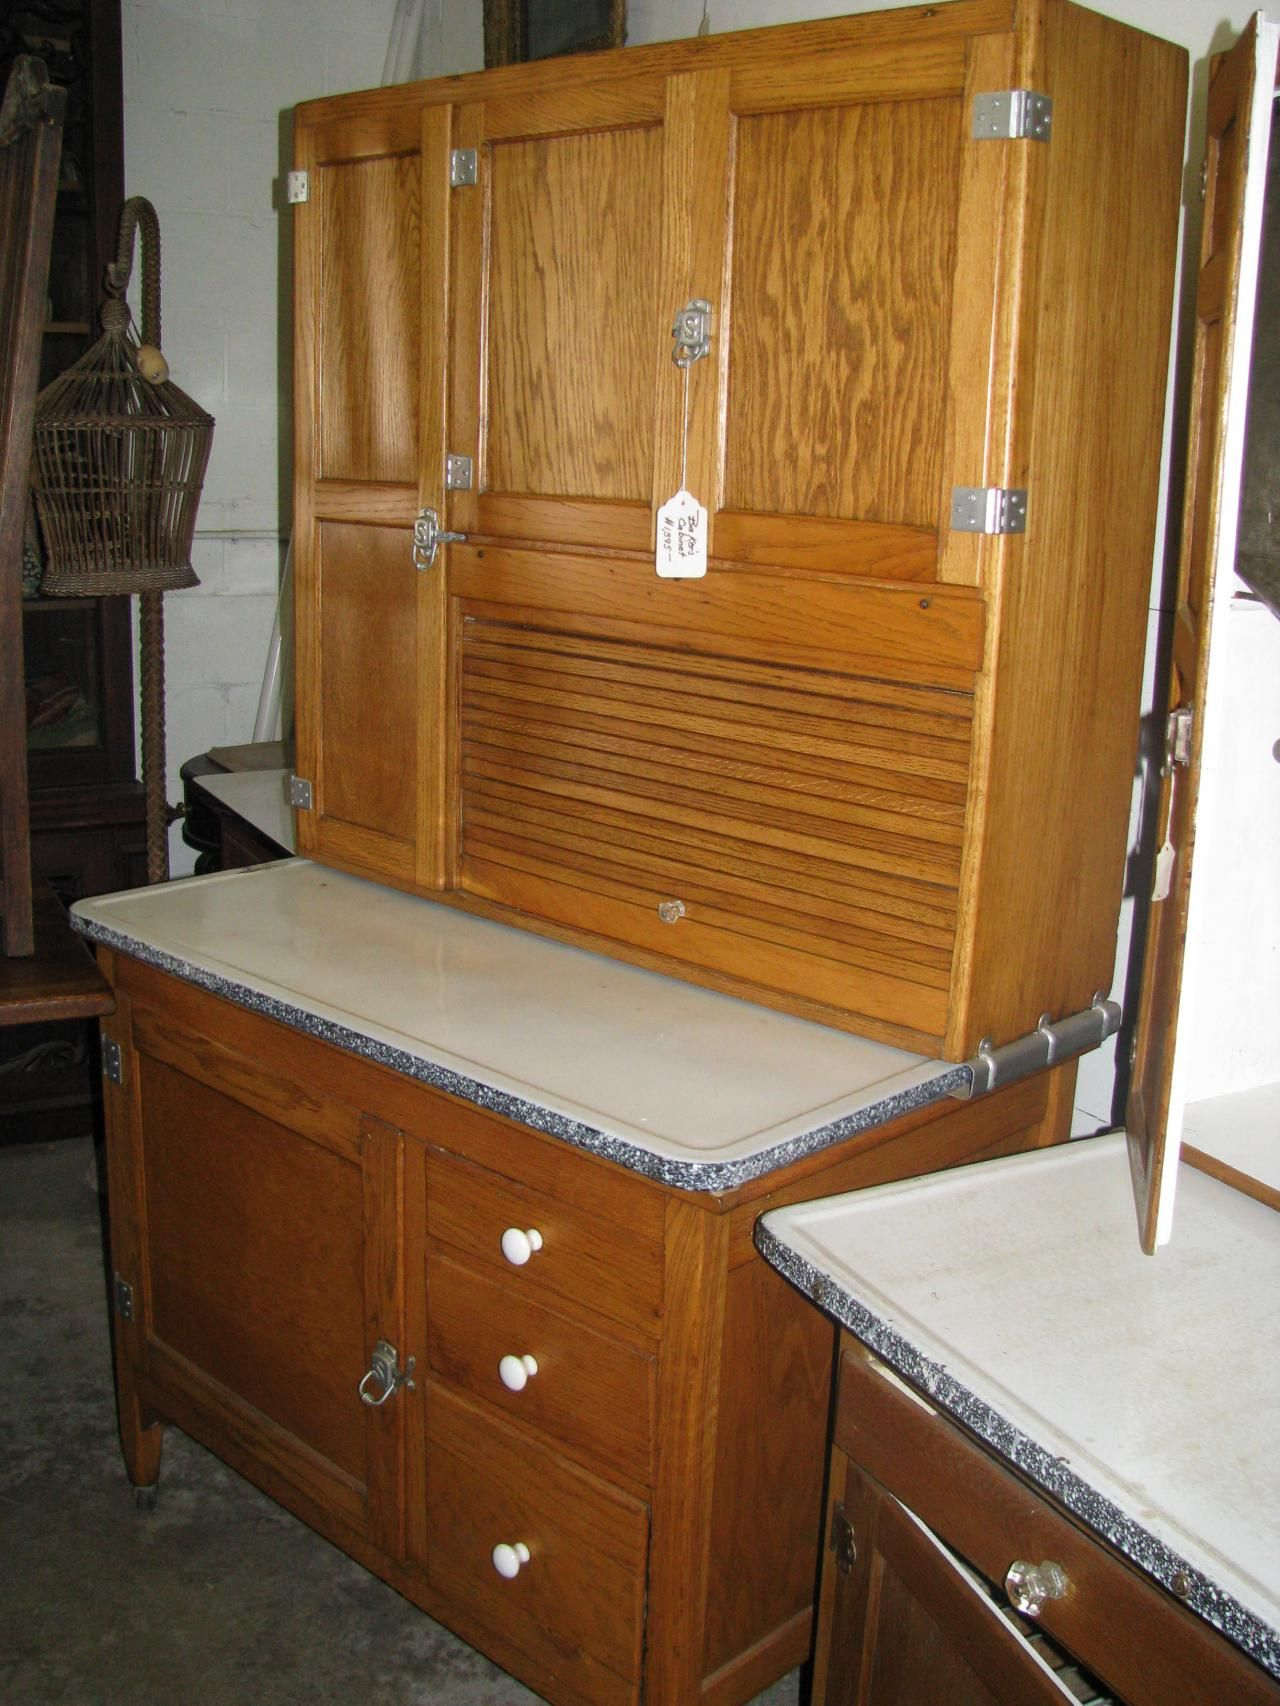 Antique Hoosier Bakers Cabinet | Including yet not limited to,  Hoosiers-Sellers-Napanee - Antique Hoosier Bakers Cabinet Including Yet Not Limited To